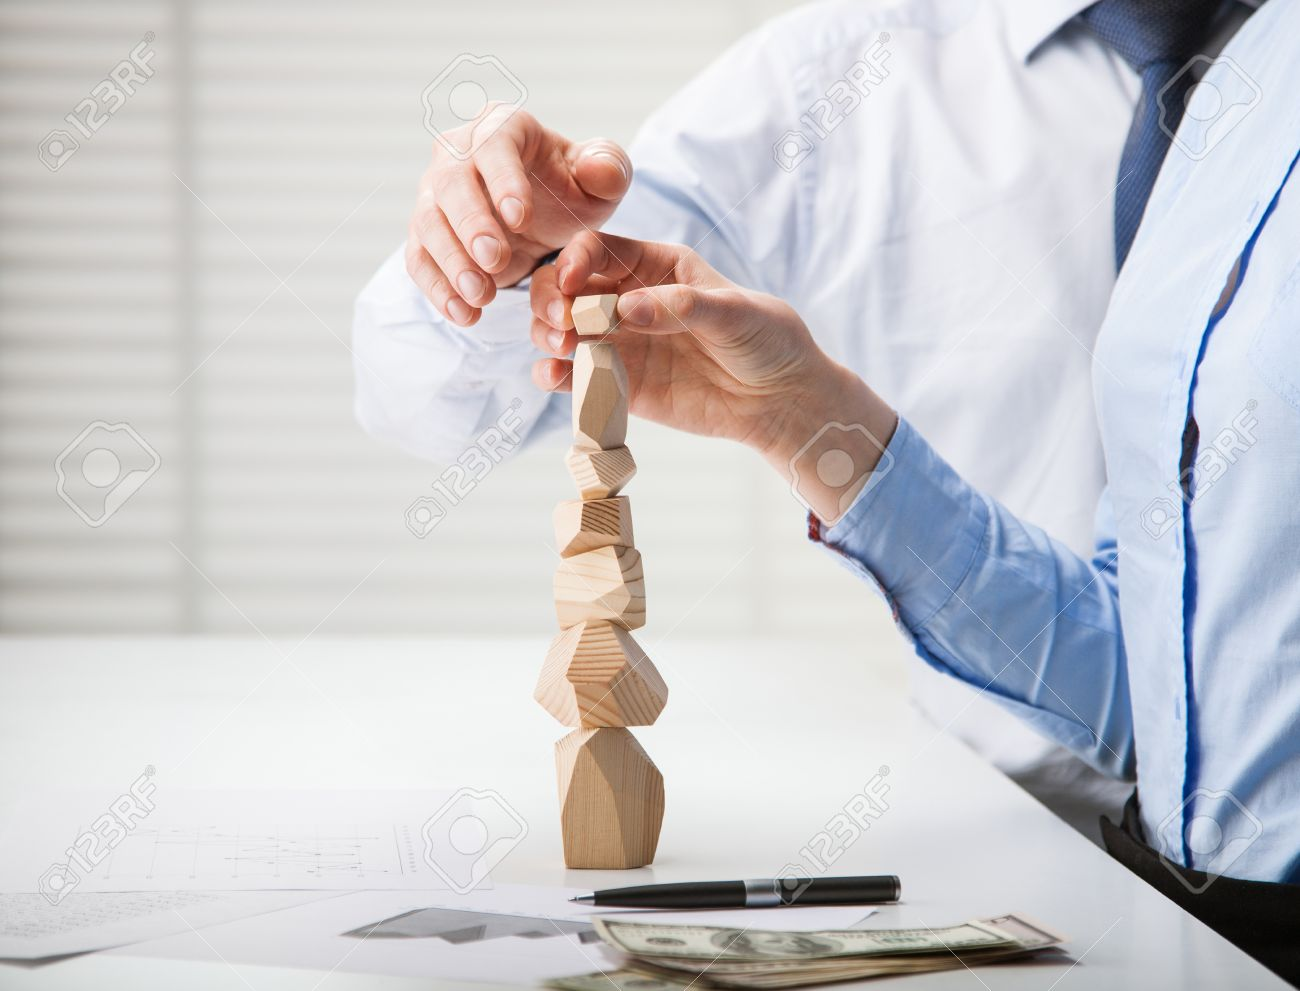 Business people building wooden tower (Japanese game tumi-ishi), illustrating concept of business success, cooperation, achievement and self-control - 31547763